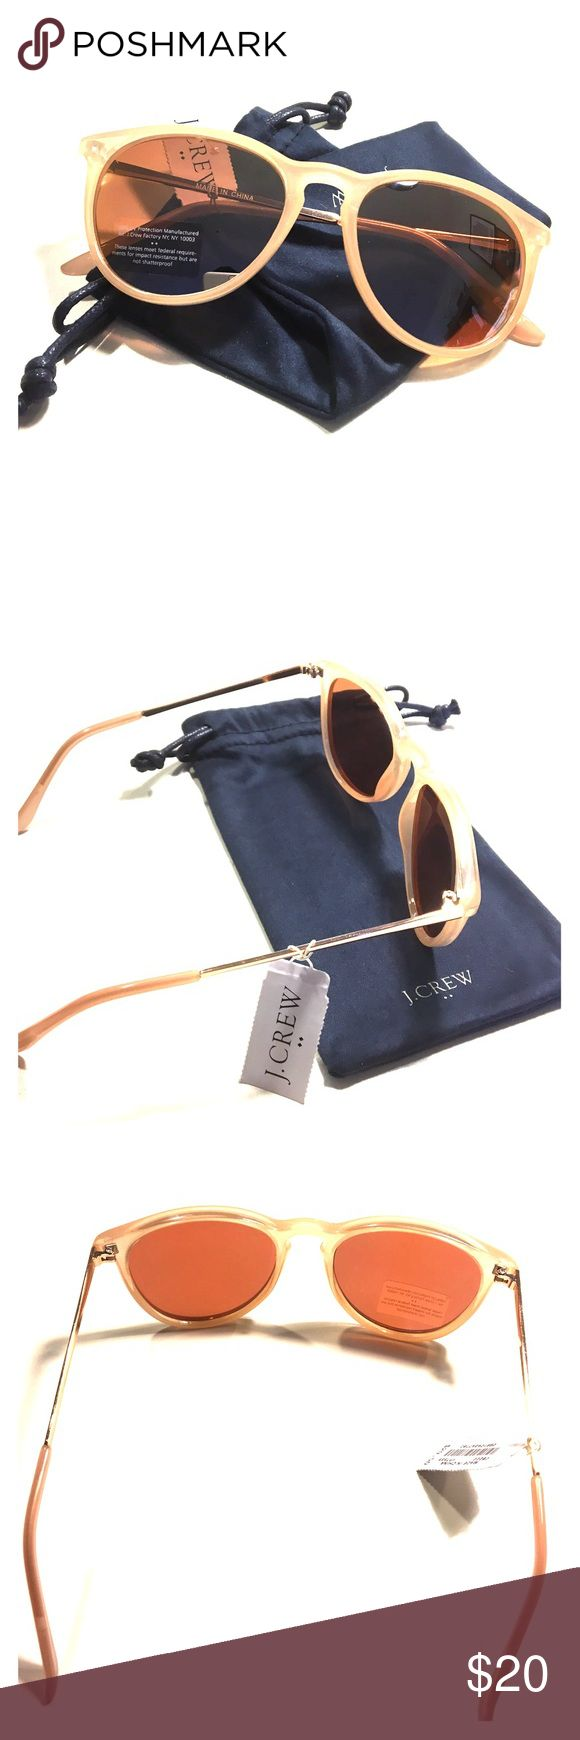 J. Crew rose gold sunglasses NWT J. Crew Factory women's sunglasses in EXCELLENT, never been used condition! Pretty rose gold color.  No issues. Perfect for the Spring and Summer! 😎🍹🏝 J. Crew Accessories Sunglasses